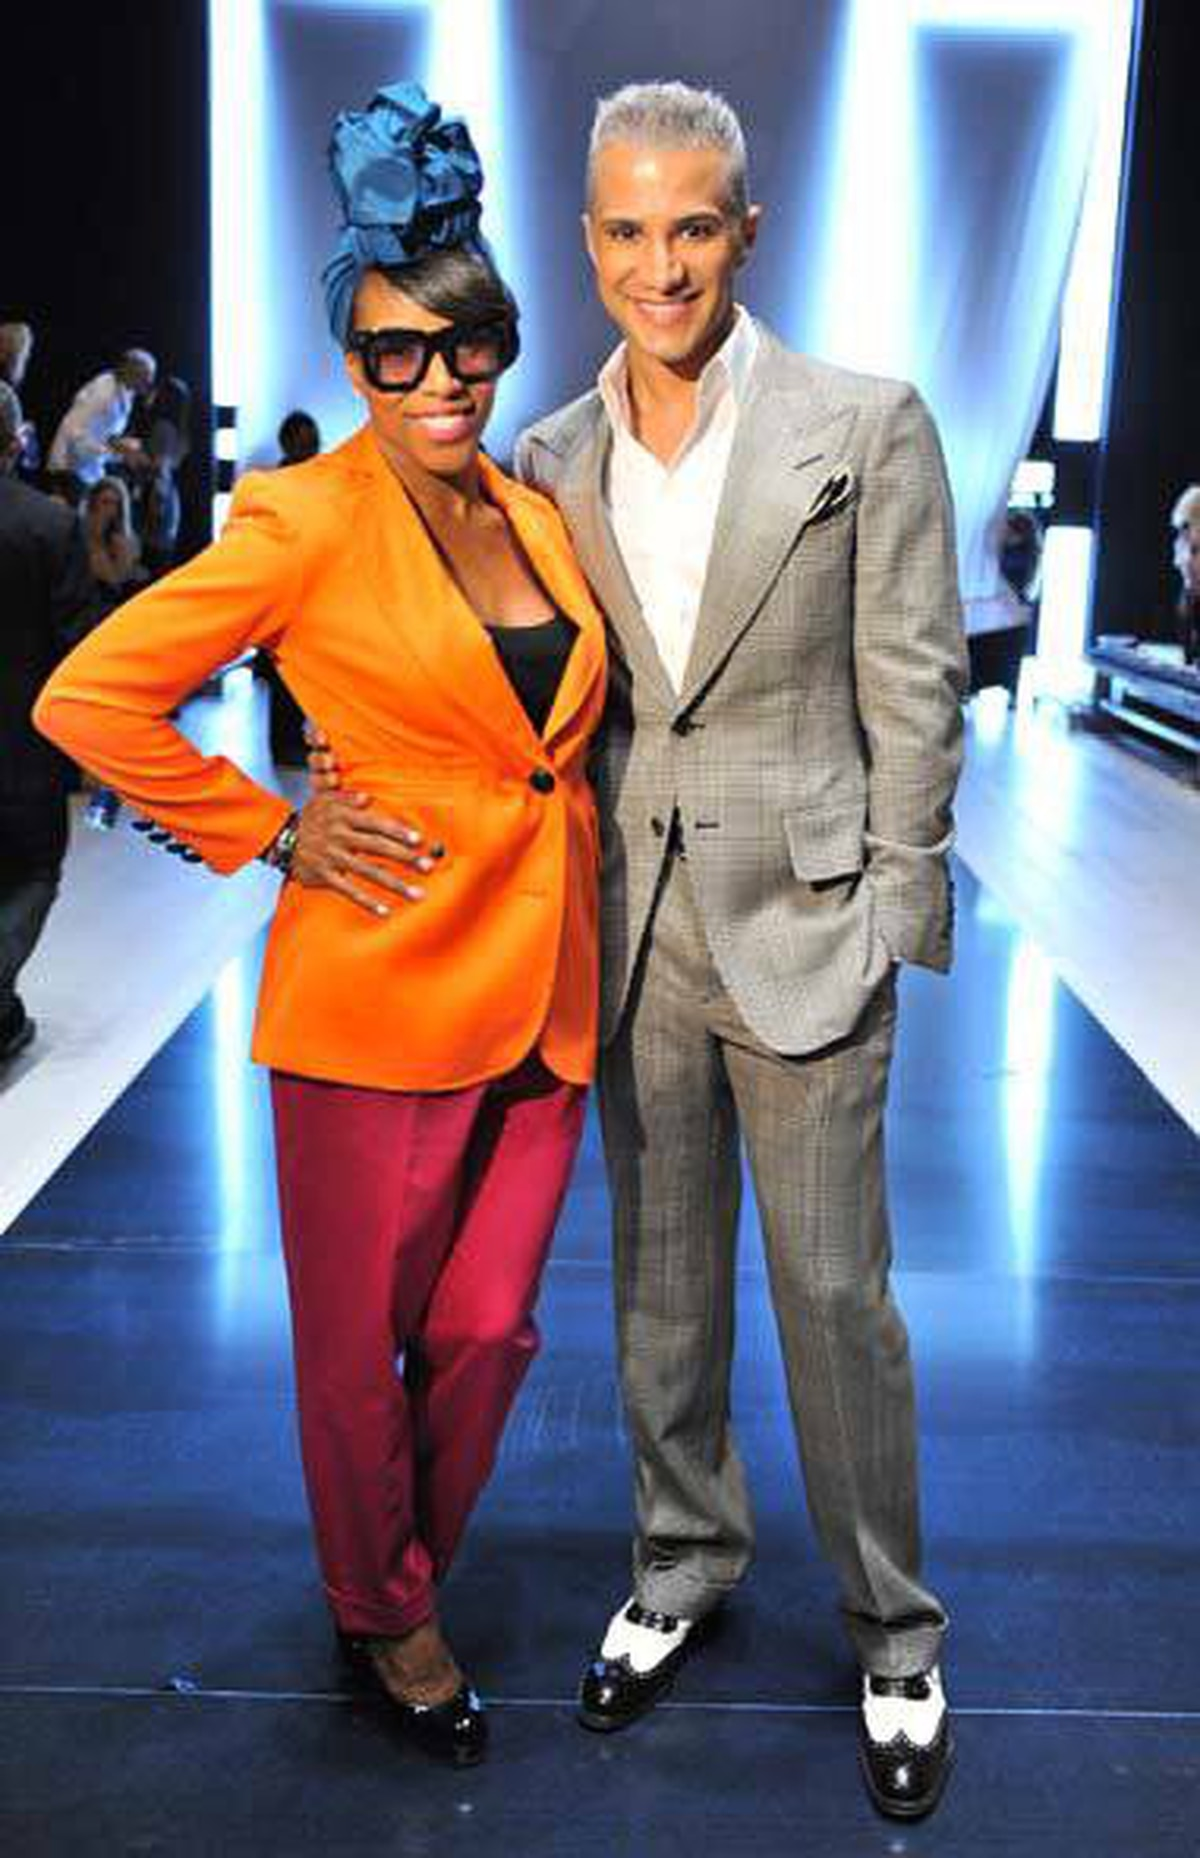 TV personality Jay Manuel poses with June Ambrose at the launch of his new Sears clothing line in Toronto last week. This is the kind of event that can only happen in Toronto, and it explains why the rest of the country is so jealous of the nation's largest city.